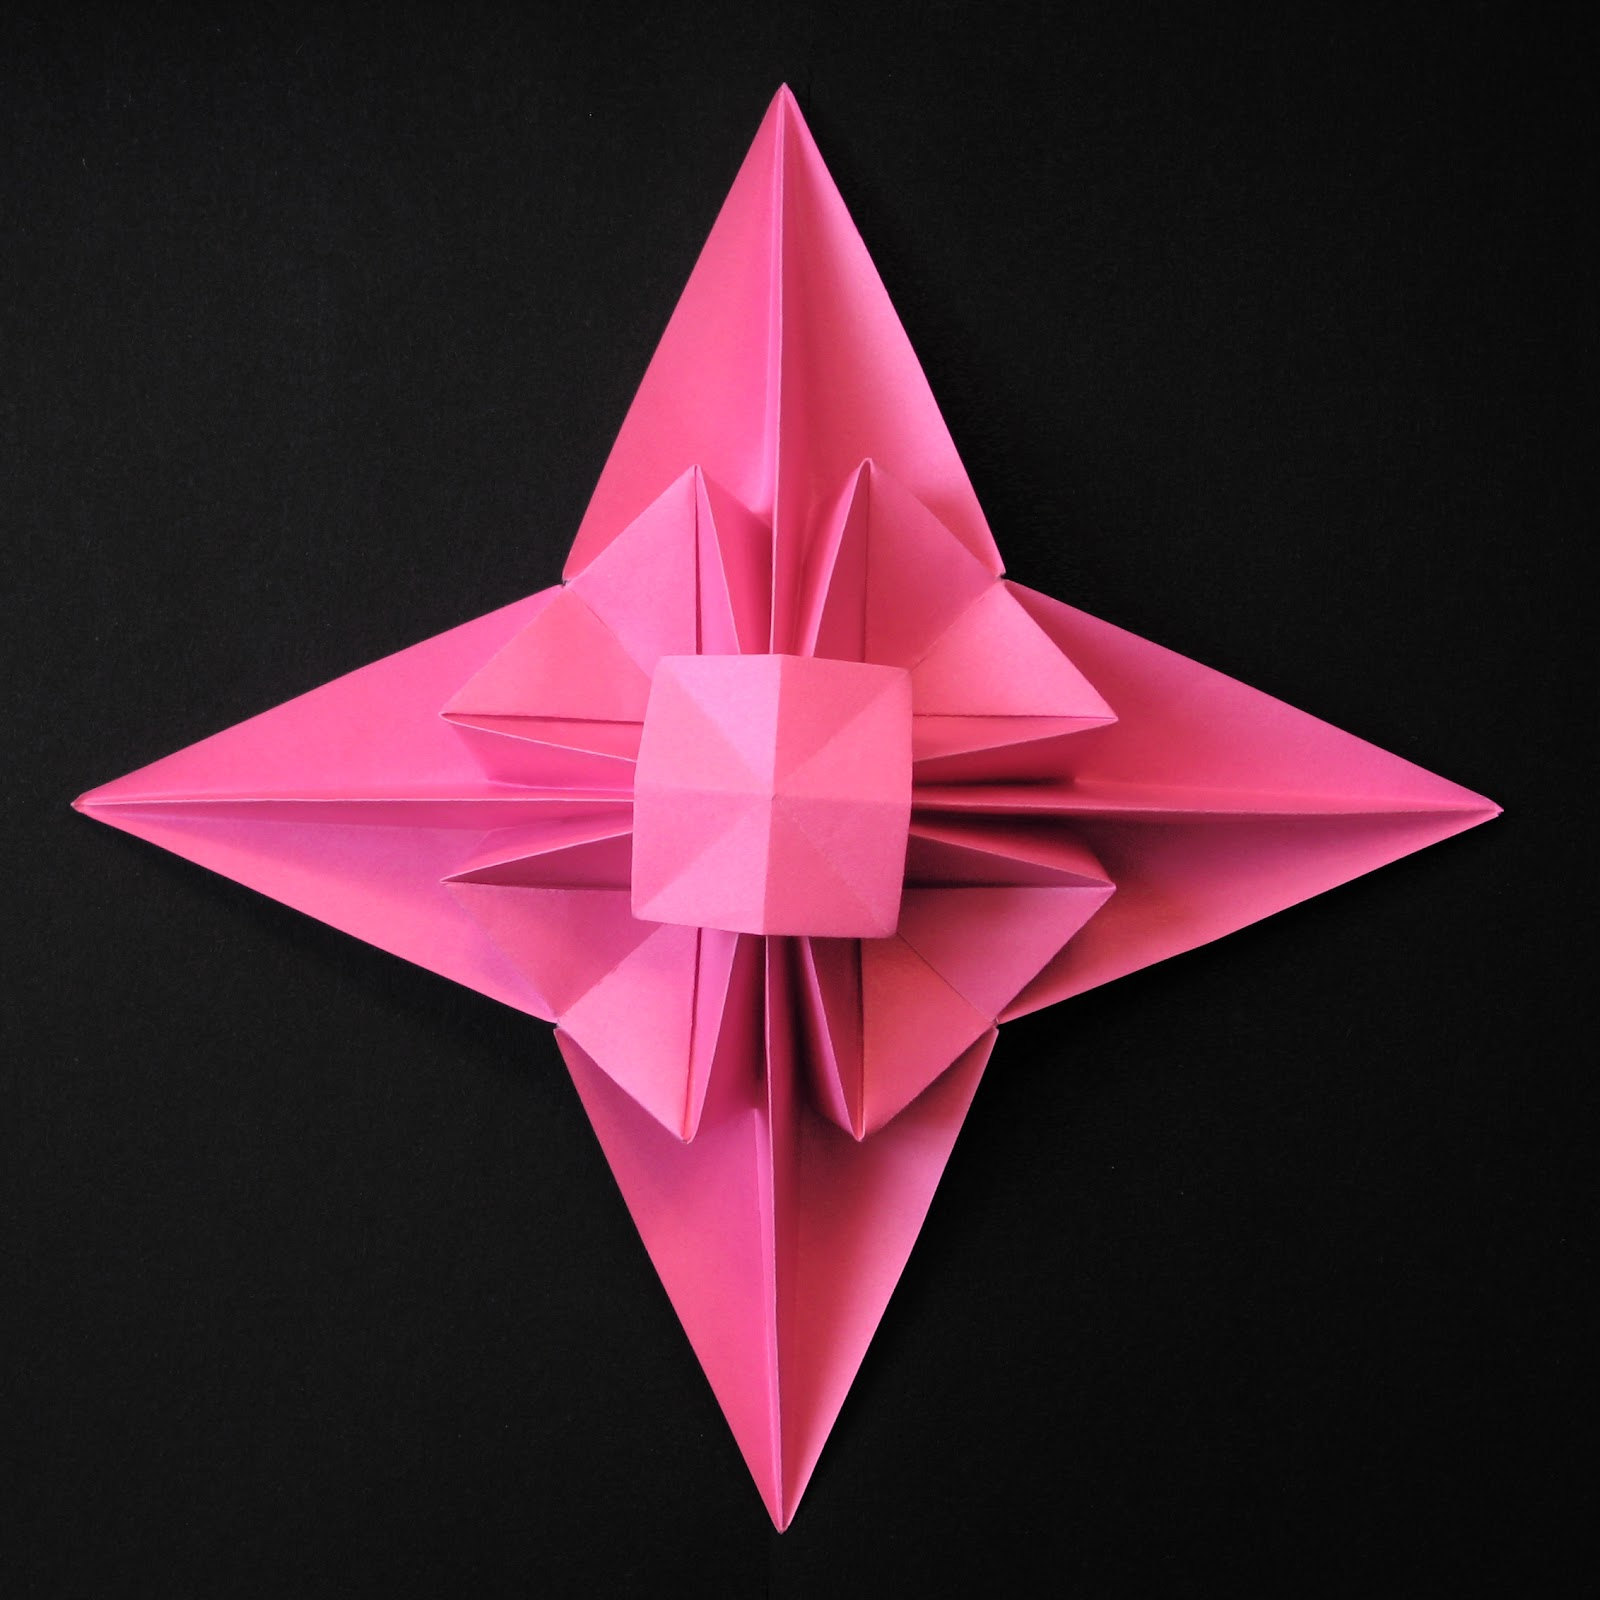 Origami 3D Star by Francesco Guarnieri